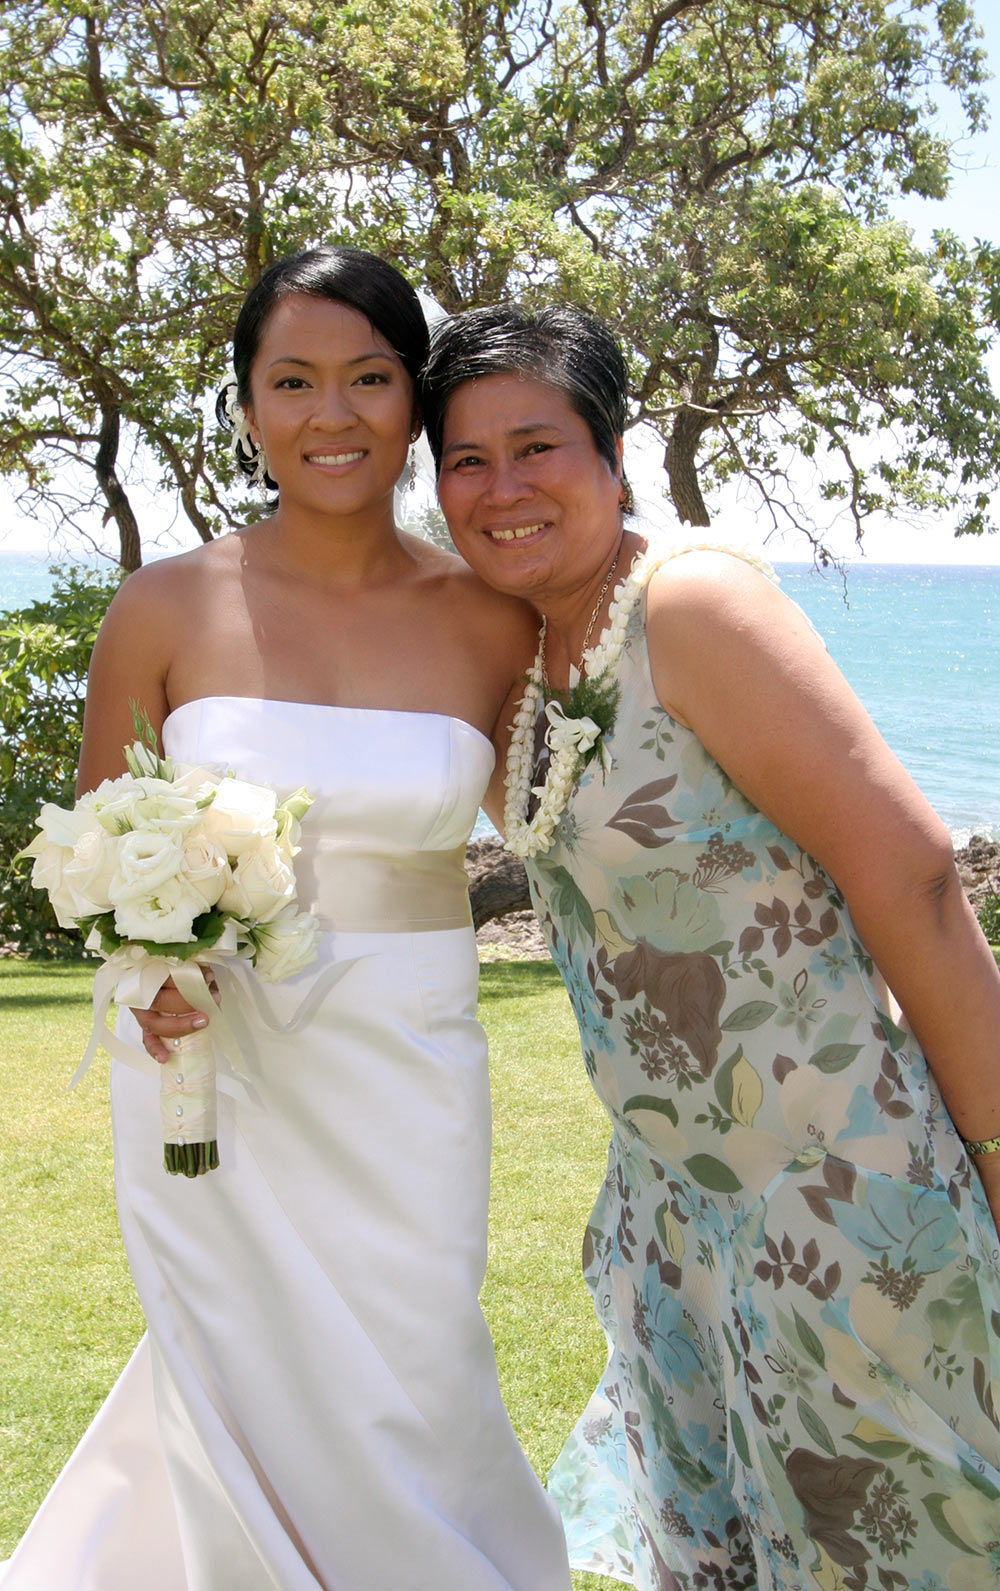 Me and mom on my wedding day